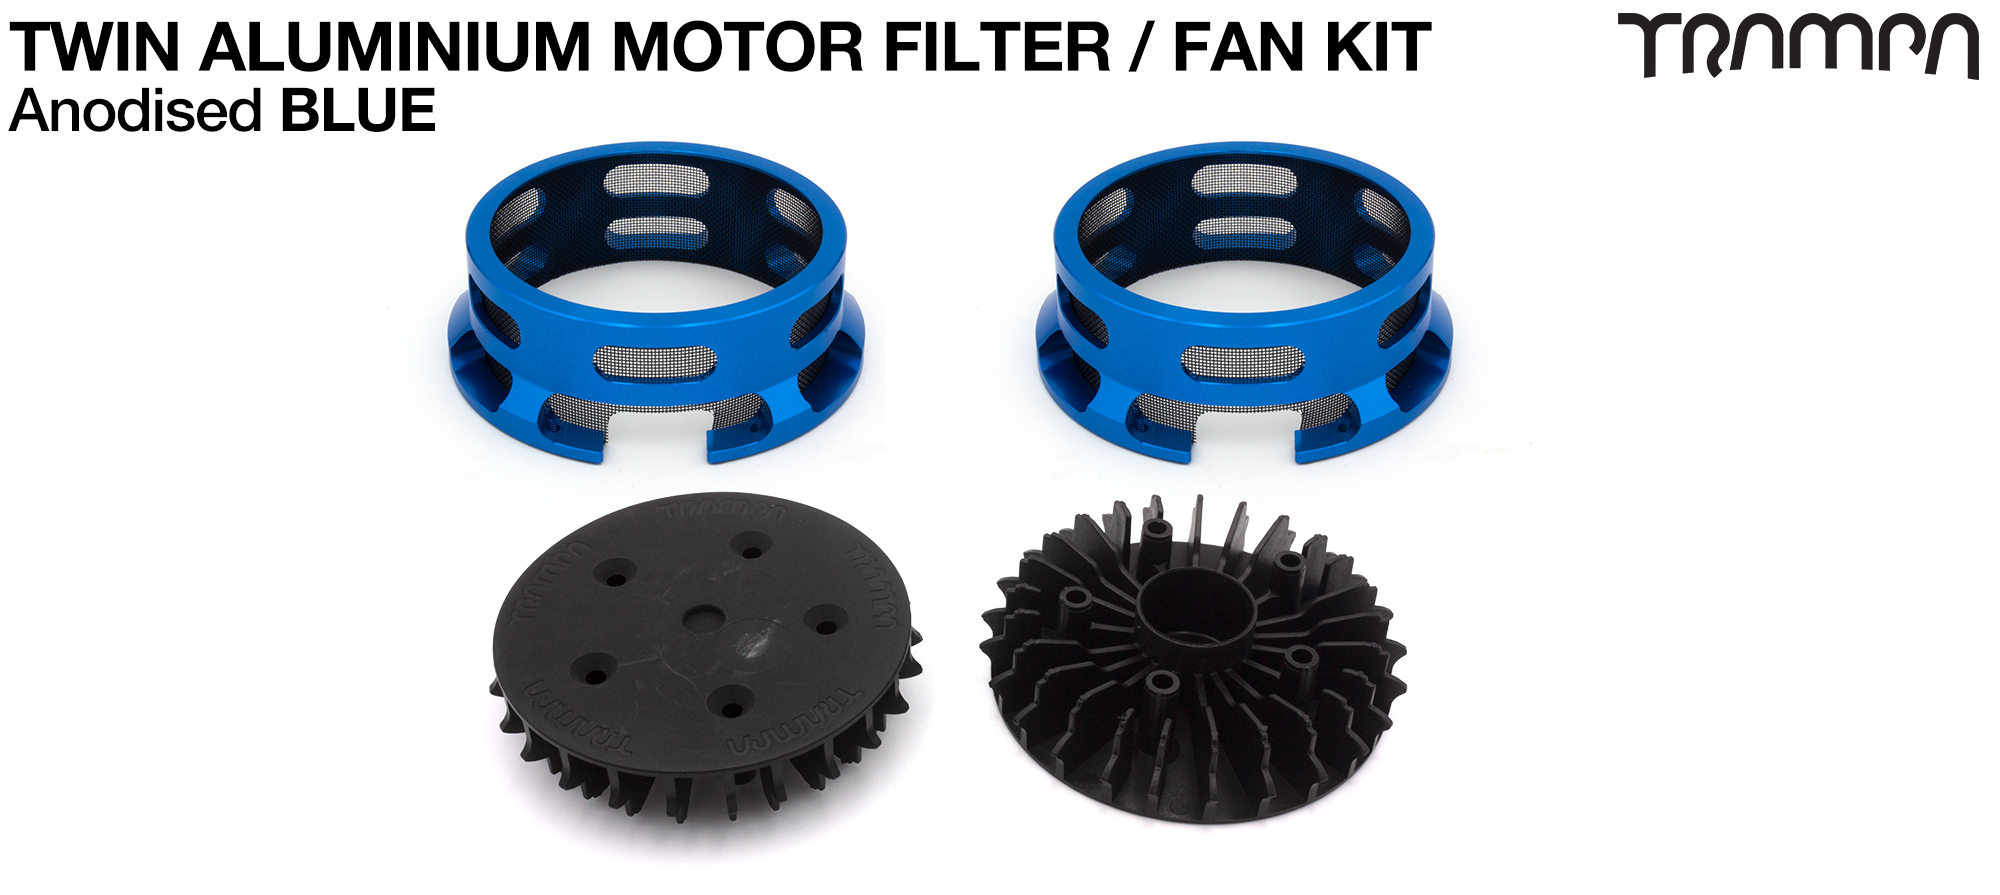 14FiFties BLACK Motor protection Housing with BLUE particle Filter & Fan - TWIN